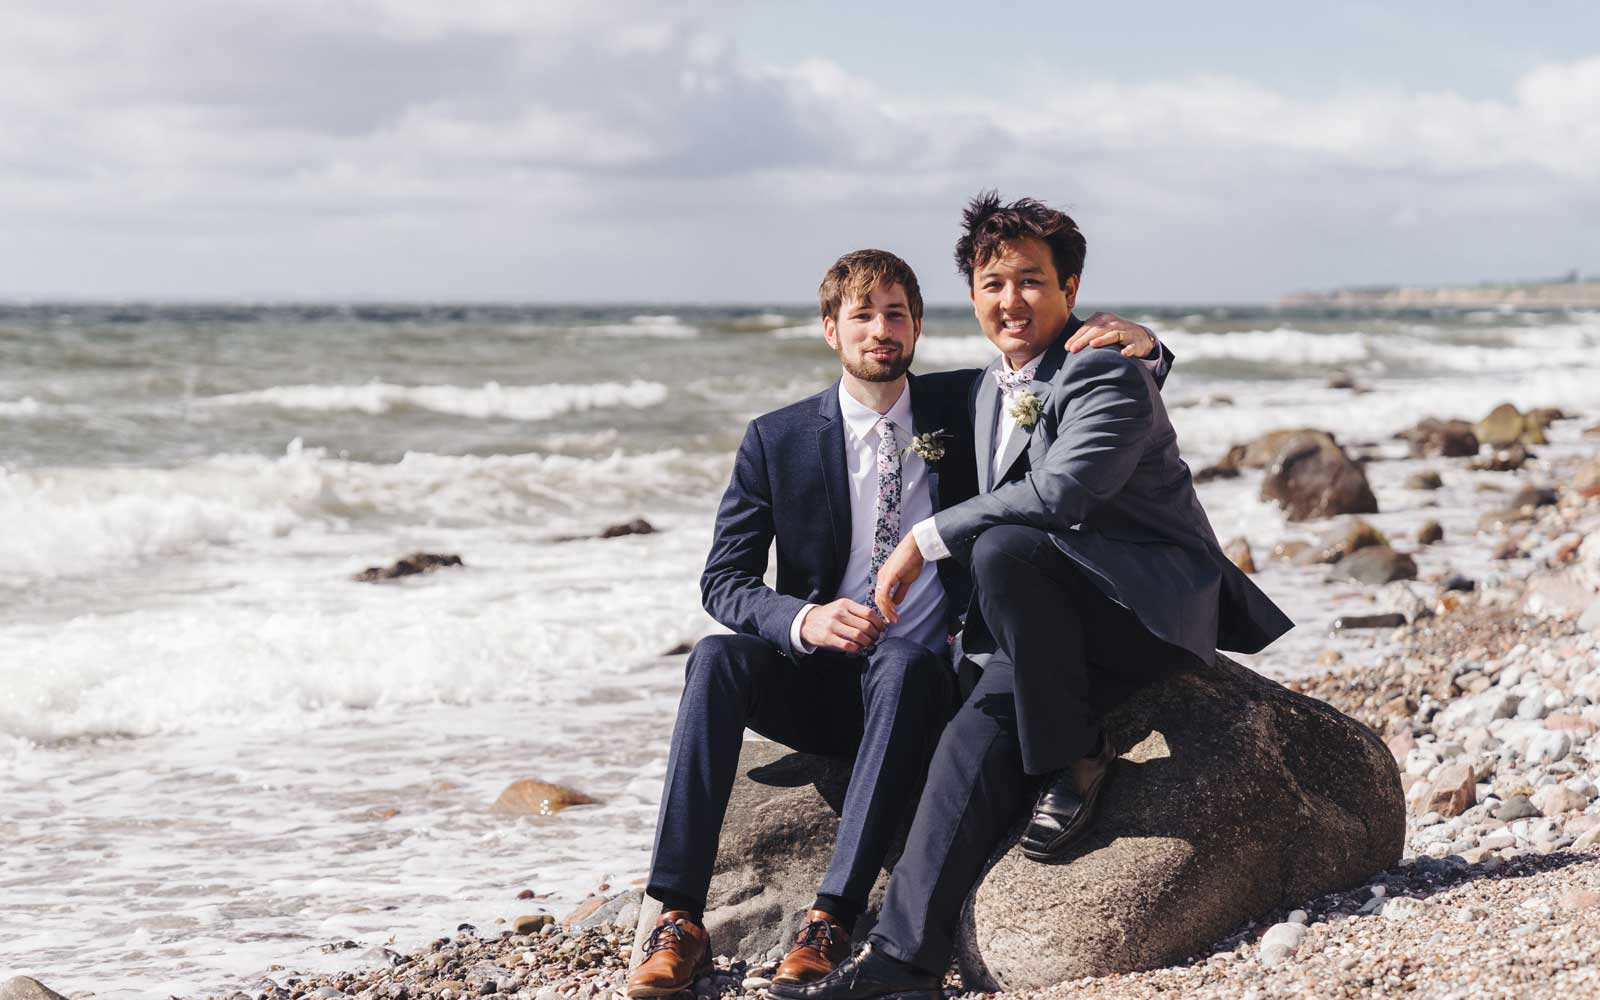 Newlyweds sit together on beach at the Baltic Sea